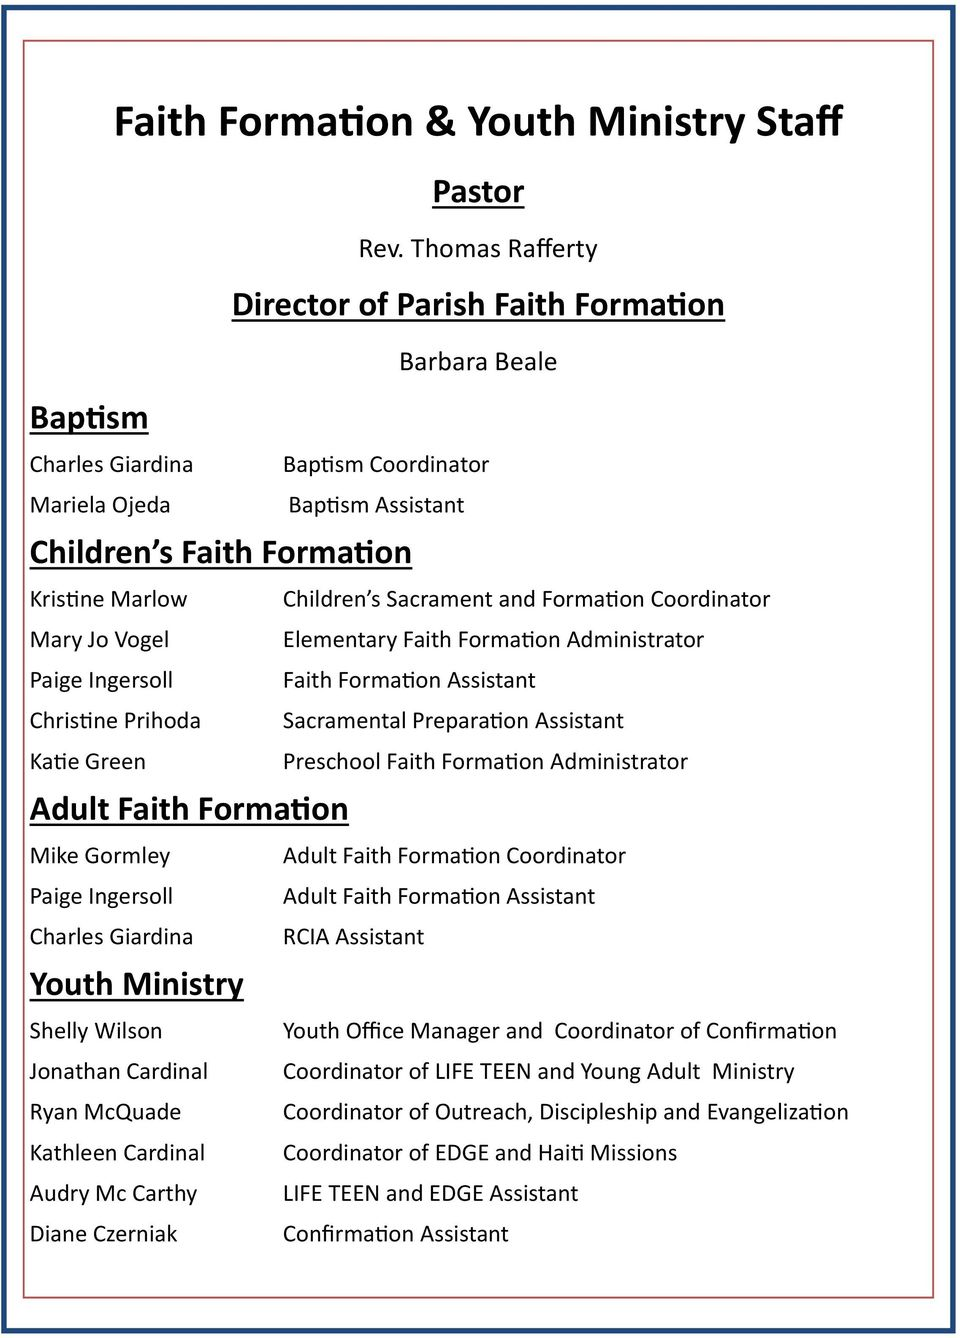 Formation Administrator Paige Ingersoll Faith Formation Assistant Christine Prihoda Sacramental Preparation Assistant Katie Green Preschool Faith Formation Administrator Adult Faith Formation Mike